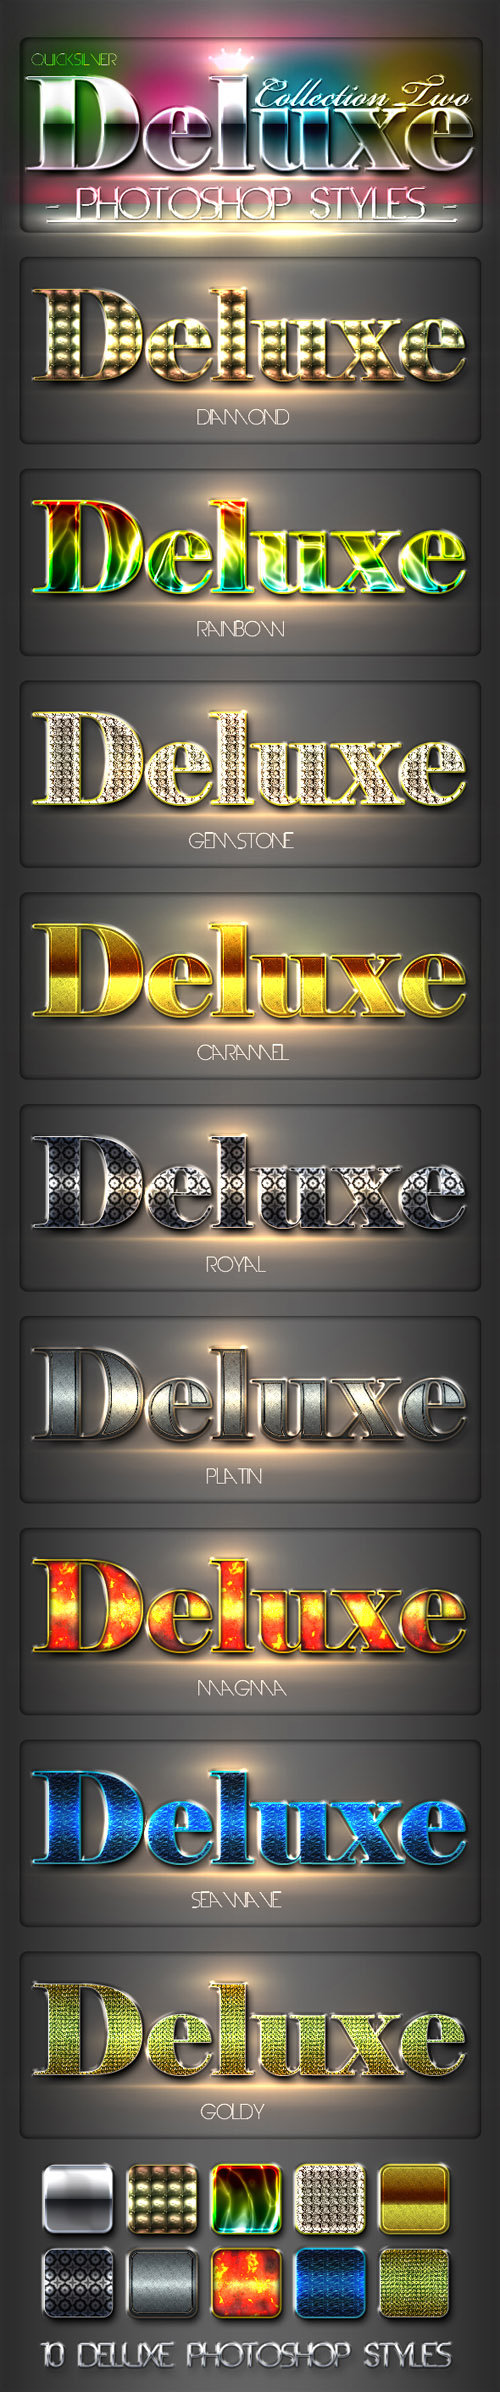 Deluxe Styles for Photoshop